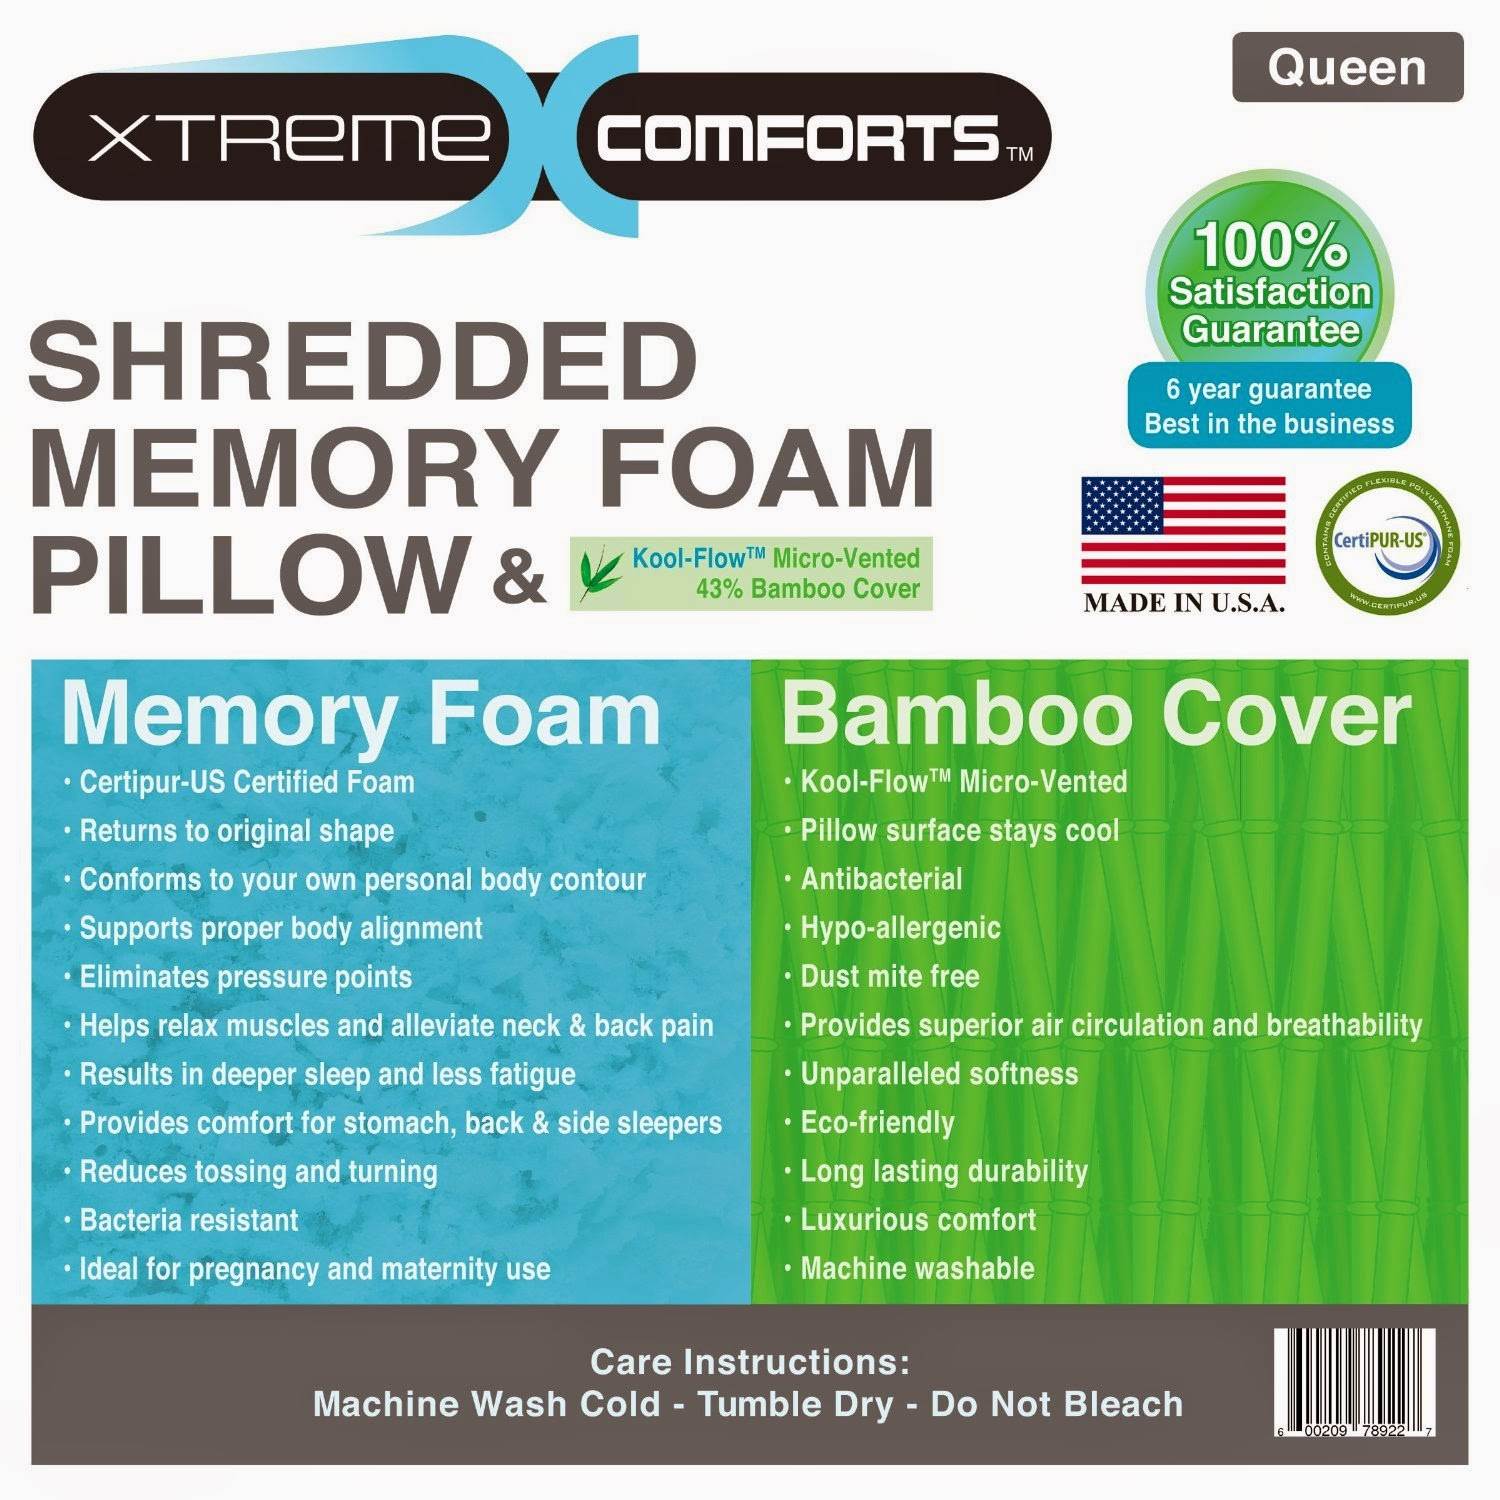 shredded memory foam pillow with koolflow microvented bamboo cover